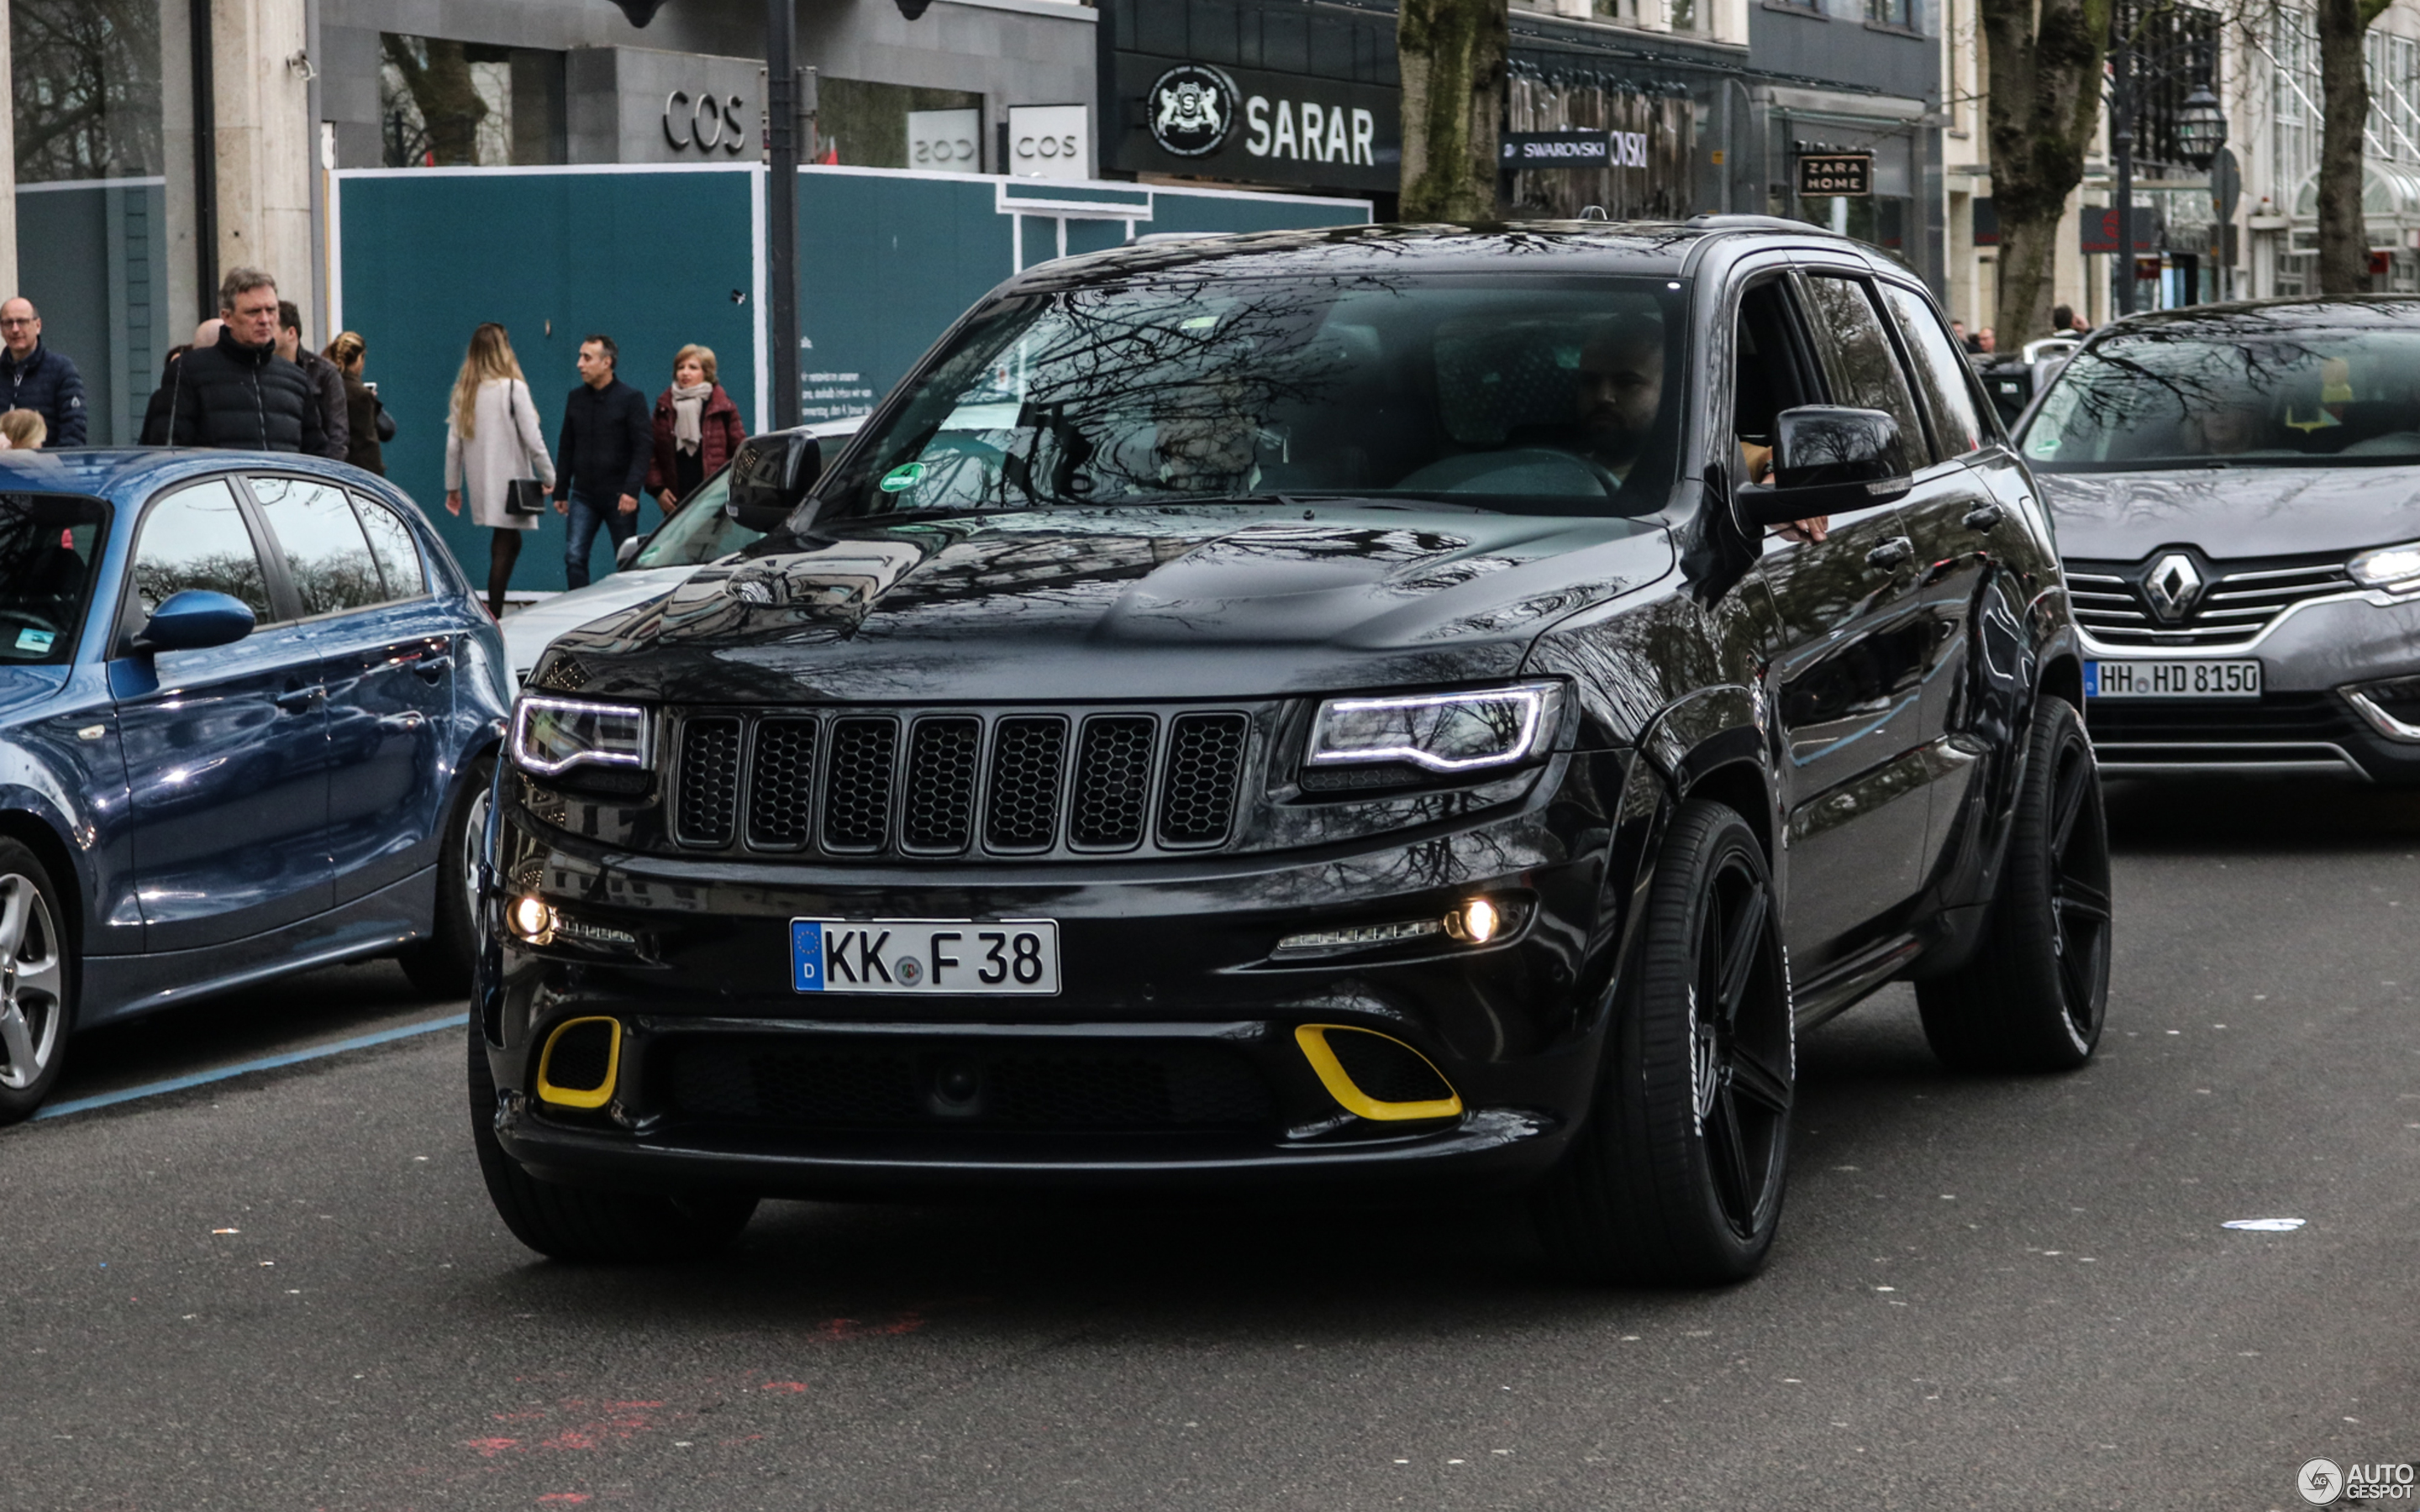 jeep grand cherokee srt 2013 - 24 march 2019